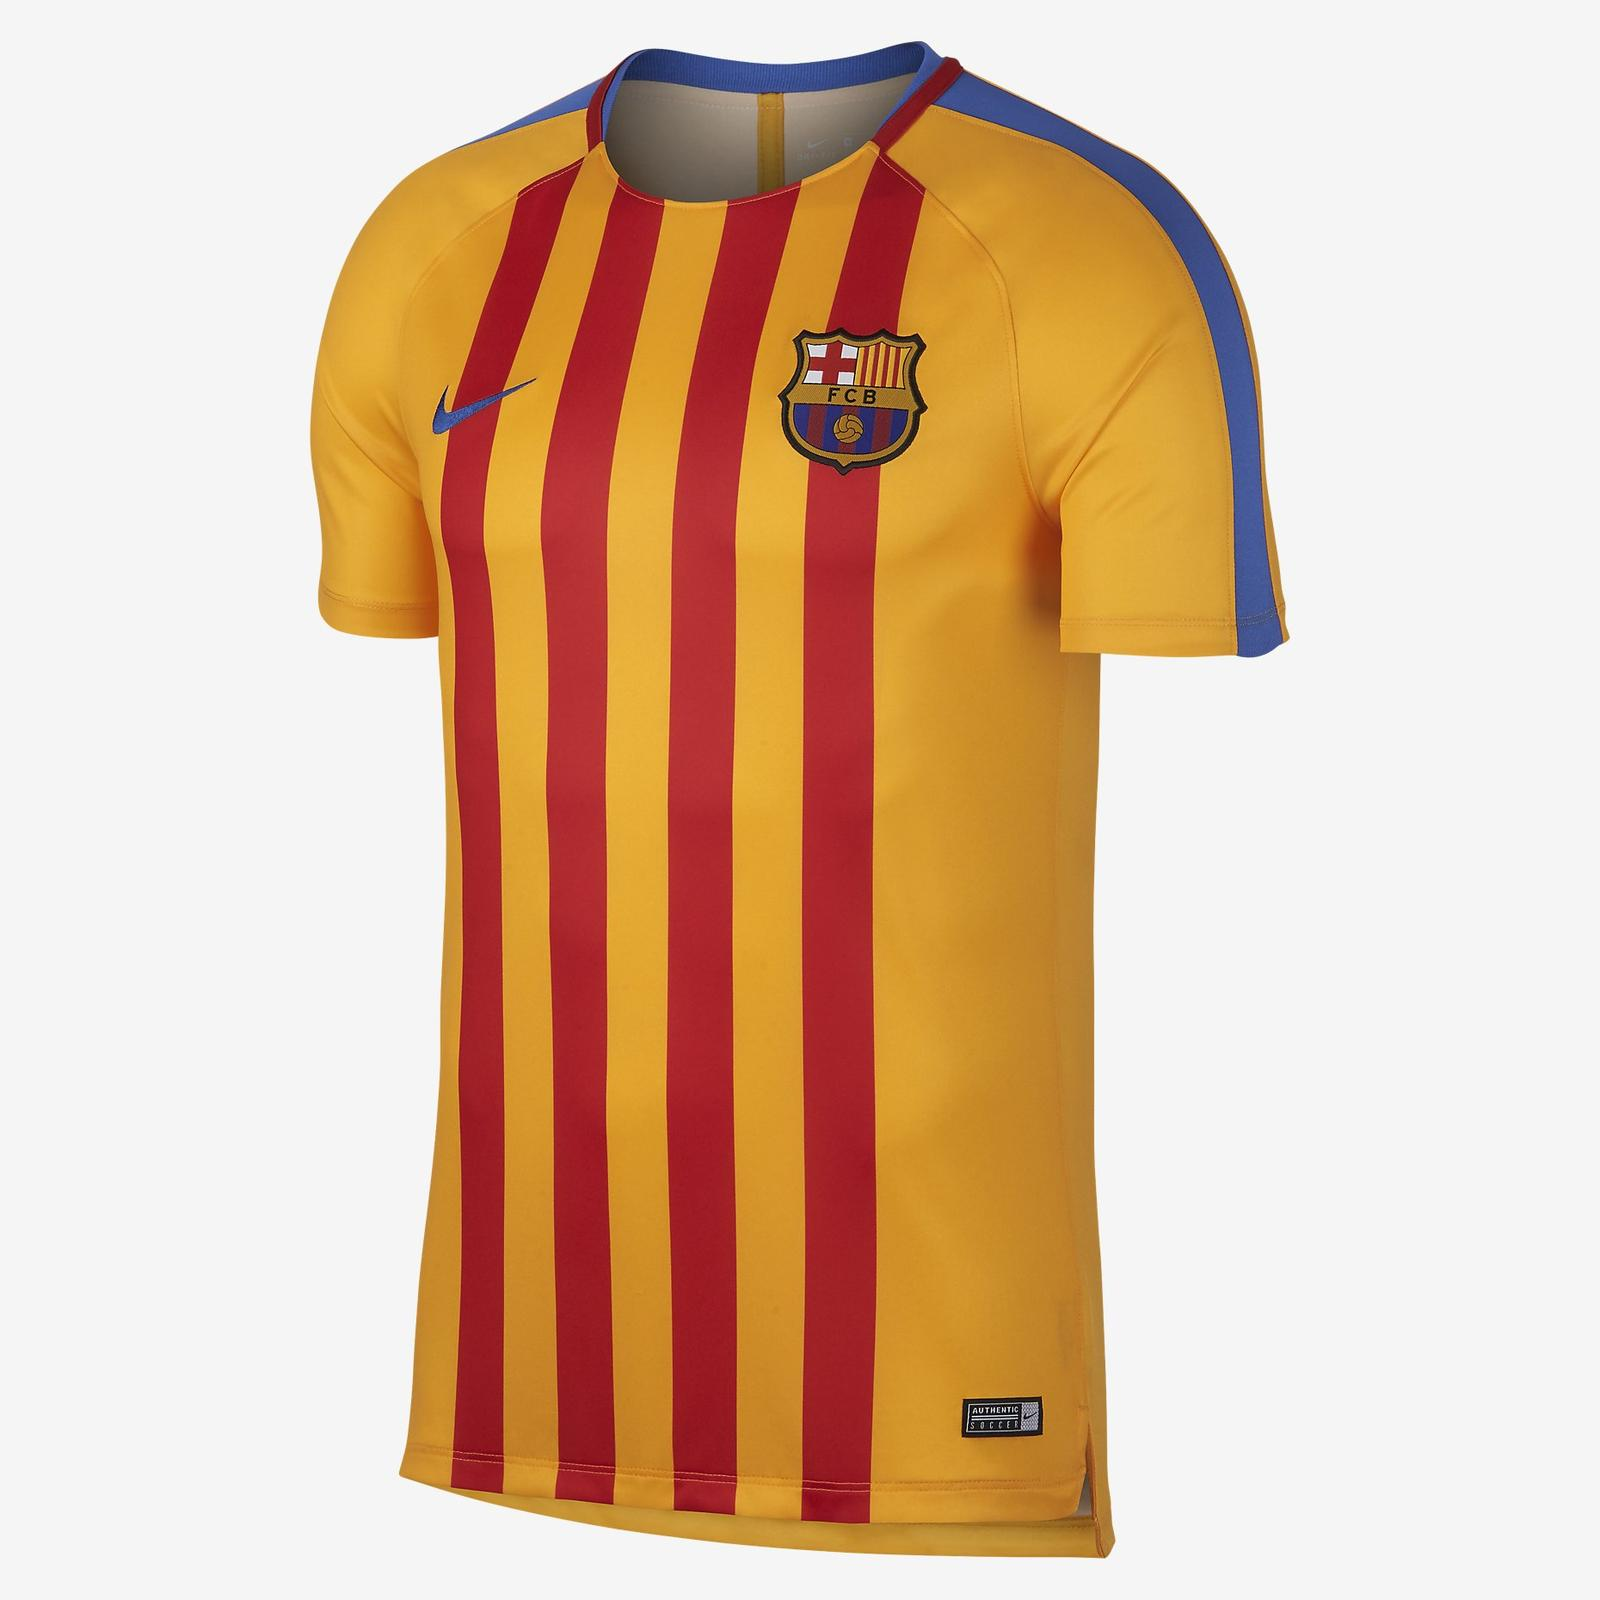 100% authentic a959a e34f1 fc barcelona match jersey